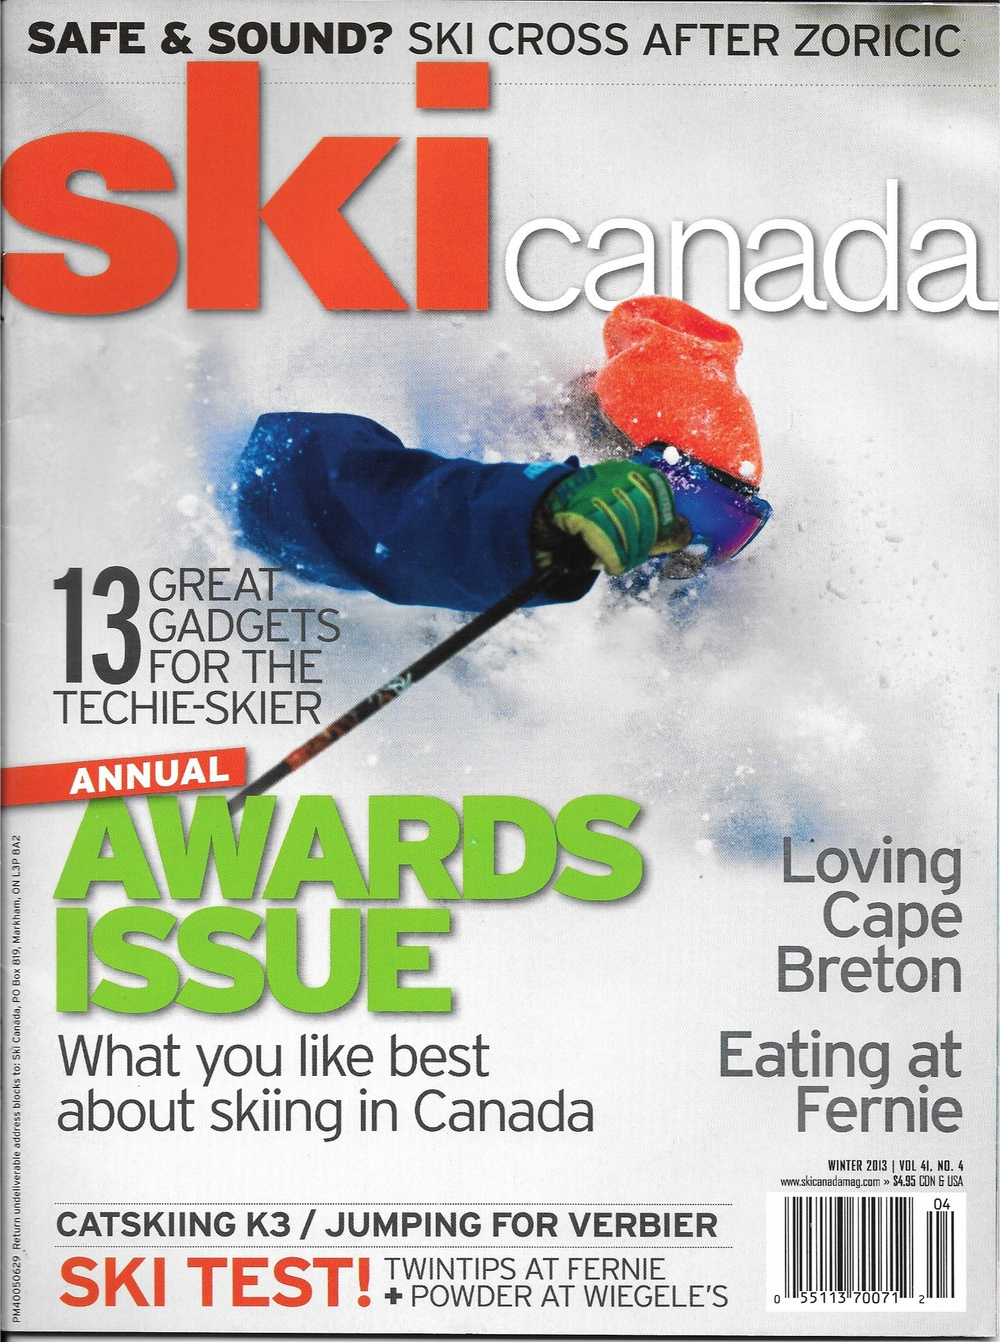 Ski Canada Winter 2013 - Photo by Grant Gunderson http://www.grantgunderson.com/